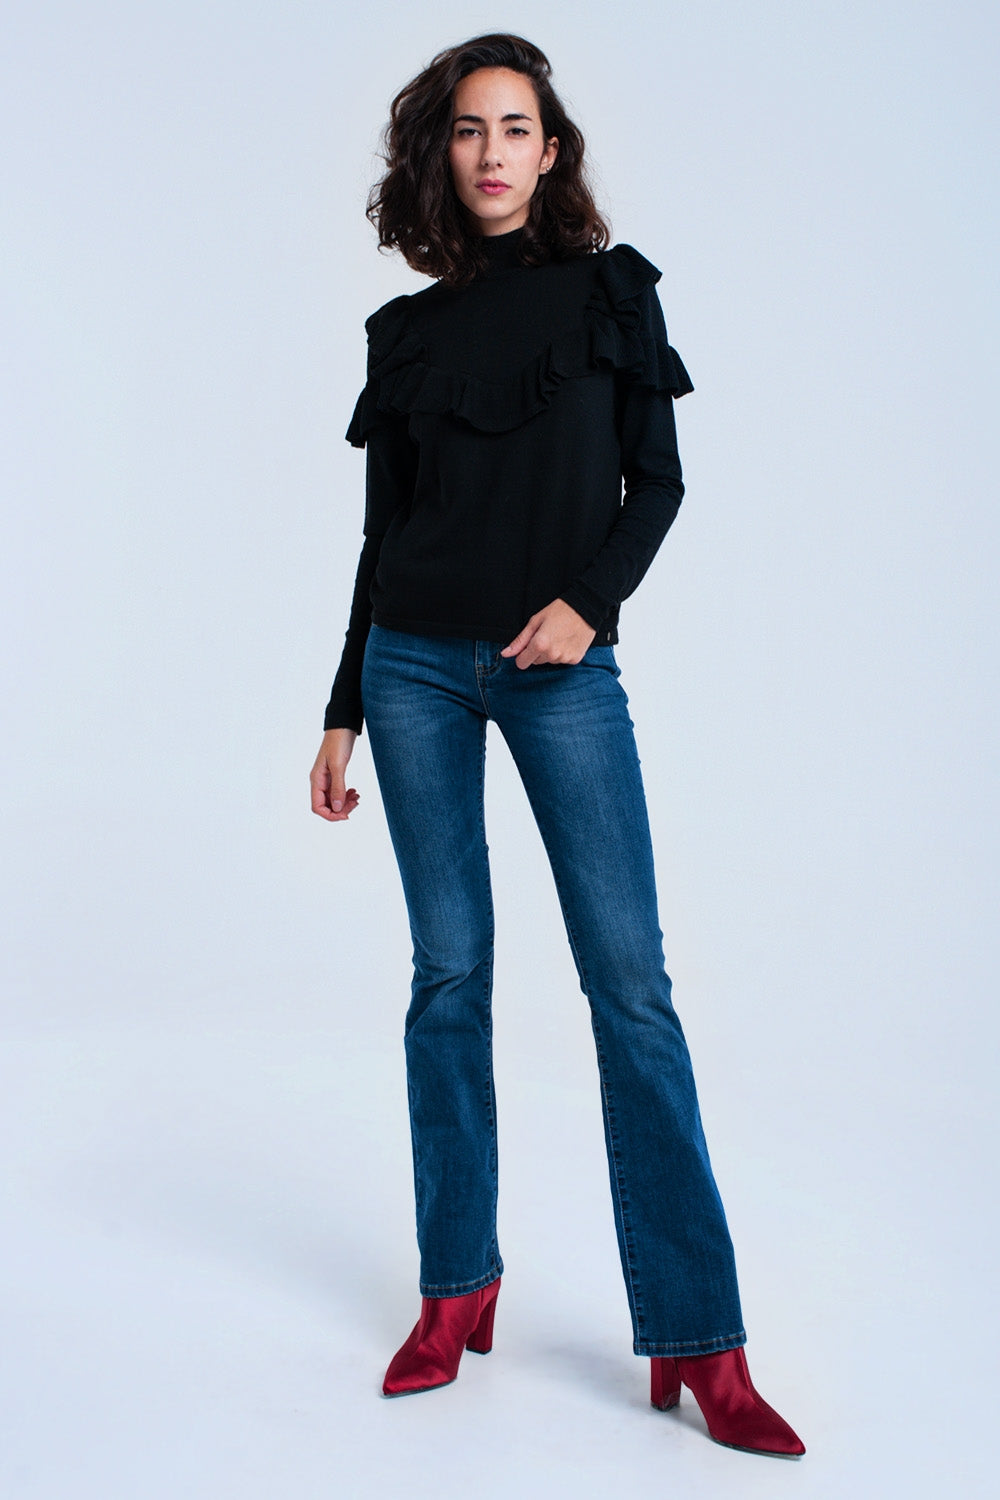 Black Sweater With Ruffle-Women - Apparel - Sweaters - Pull Over-Product Details Black sweater with a turtleneck, a round hem and long sleeves. Feature a ruffle detail in the front. The neckline and the ruffle are in ribbed woven fabric.-Keyomi-Sook